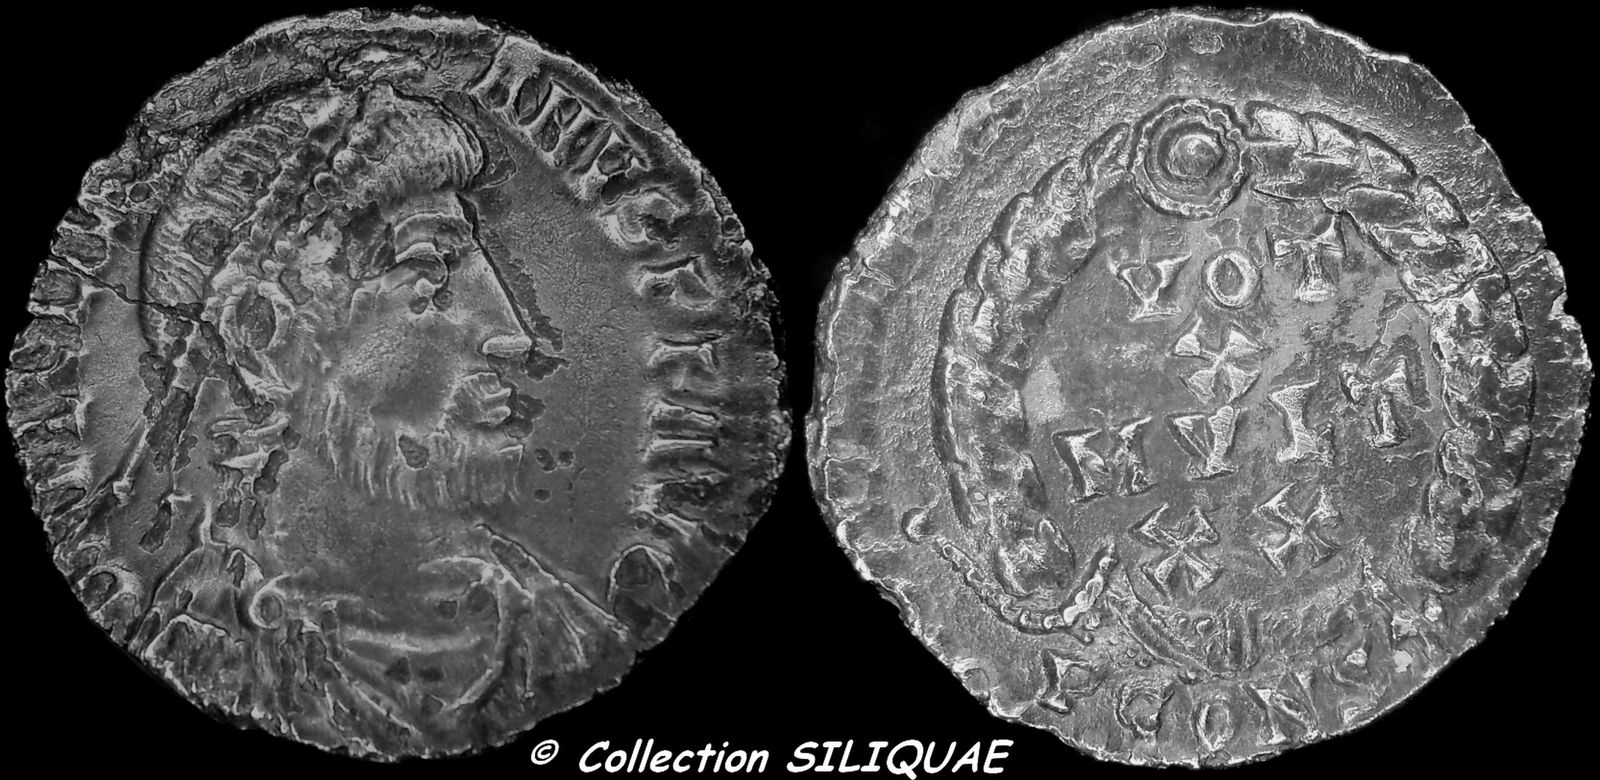 Collection Siliquae - Page 3 JULIEN-II-RIC312_P